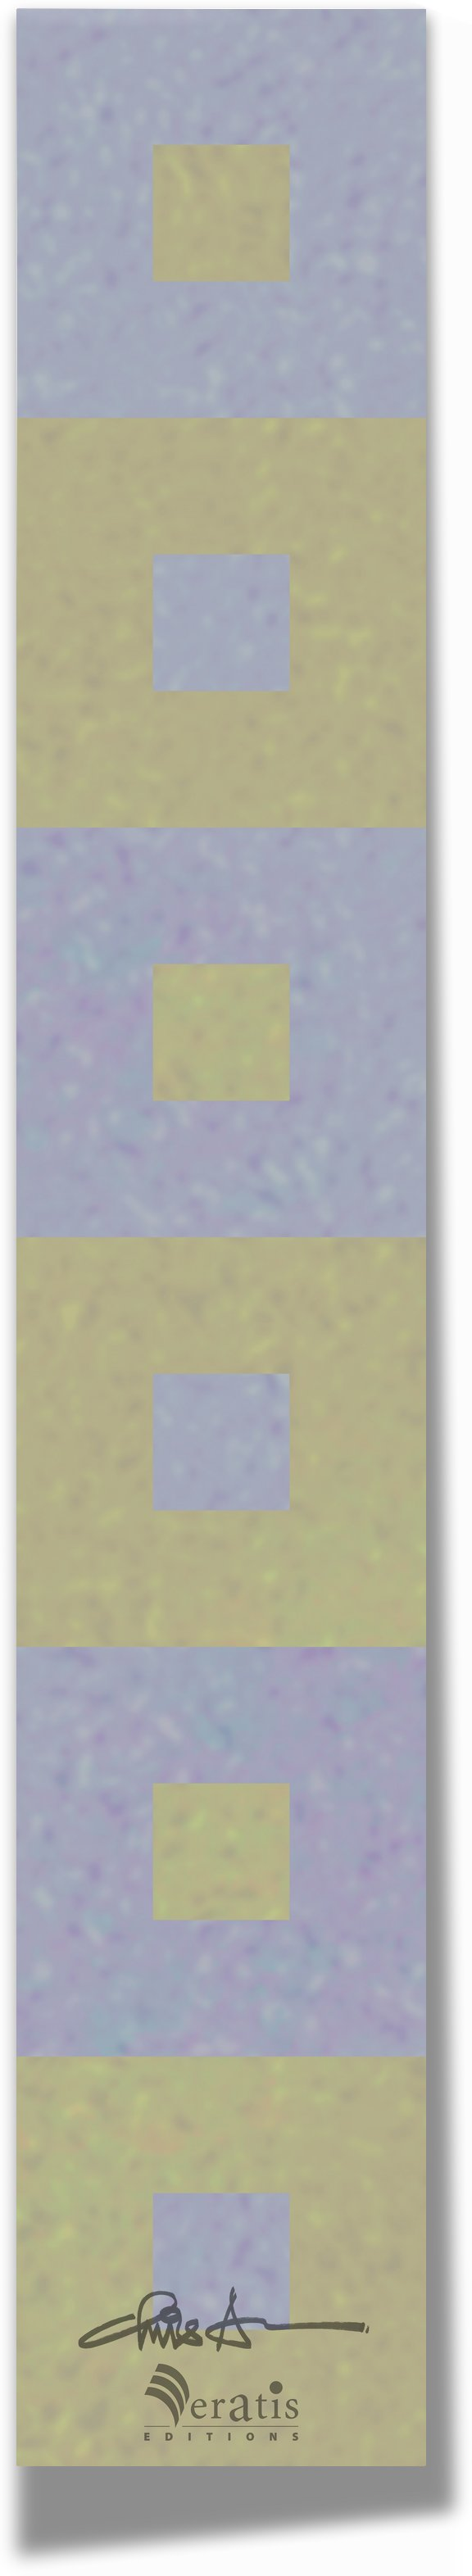 Range & Rank in Olive & Amethyst 1x6 by Veratis Editions